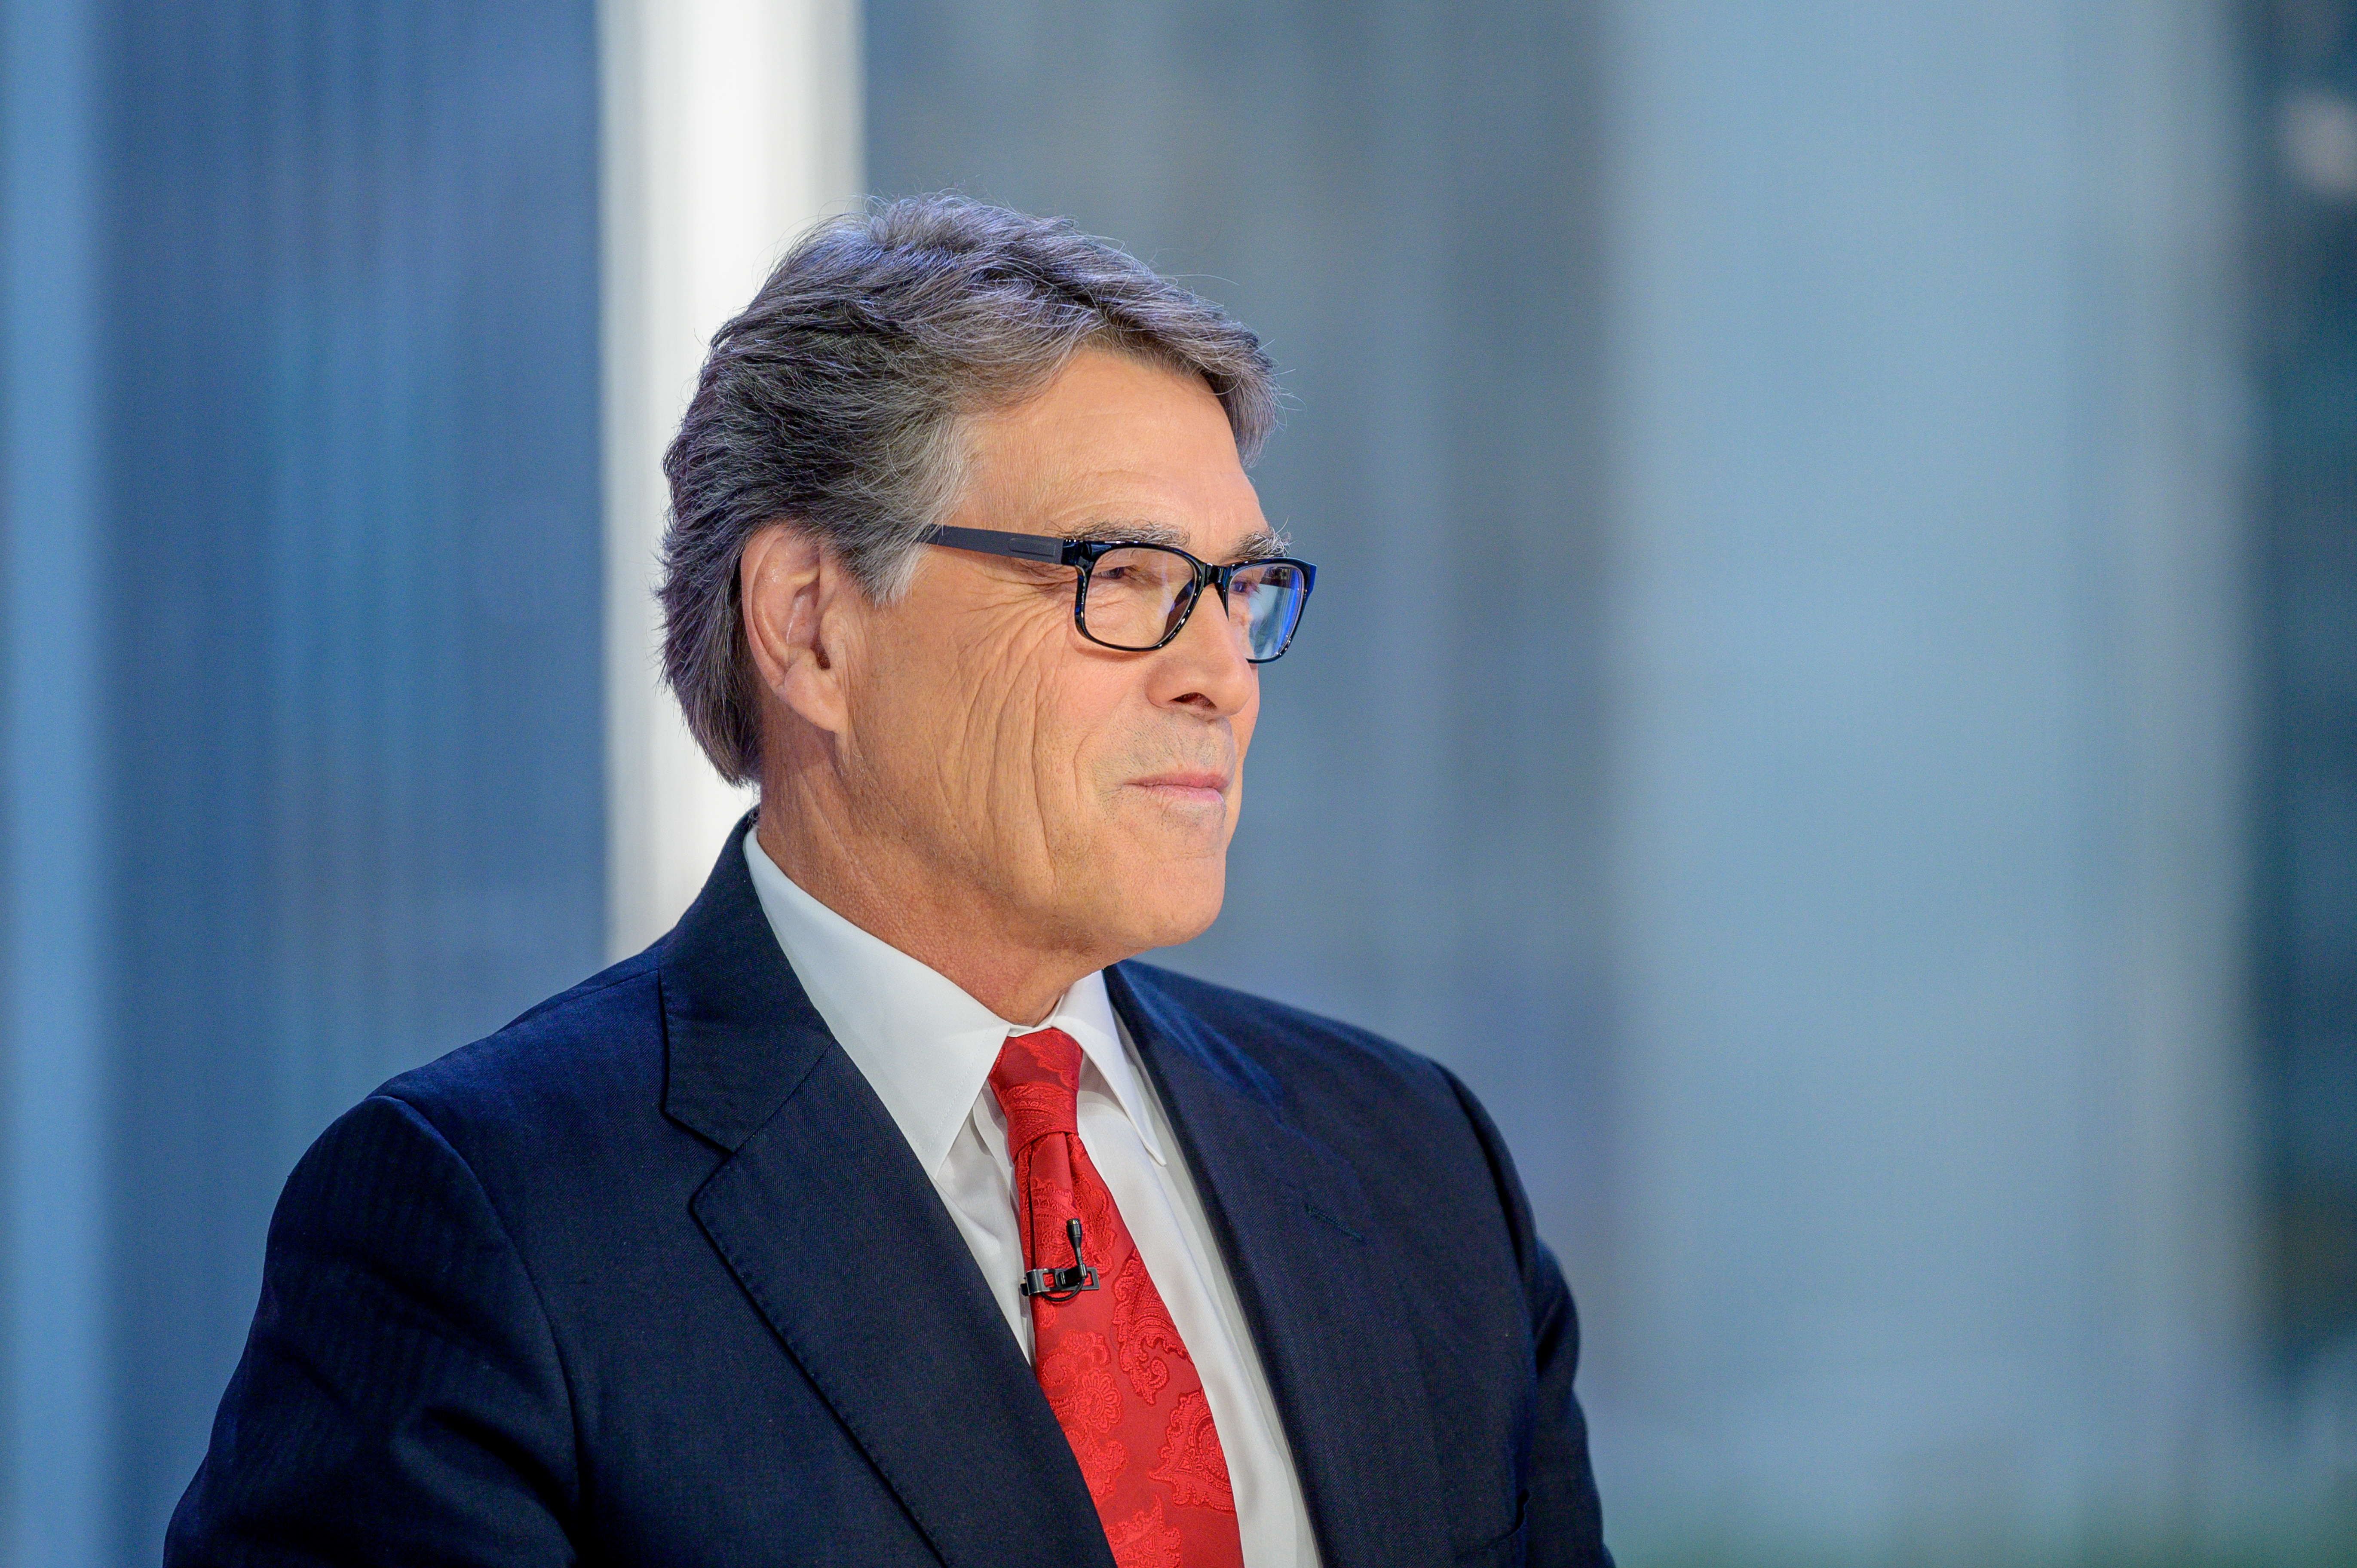 Rick Perry, a key figure in Trump's dealings with Ukraine, will resign as energy secretary